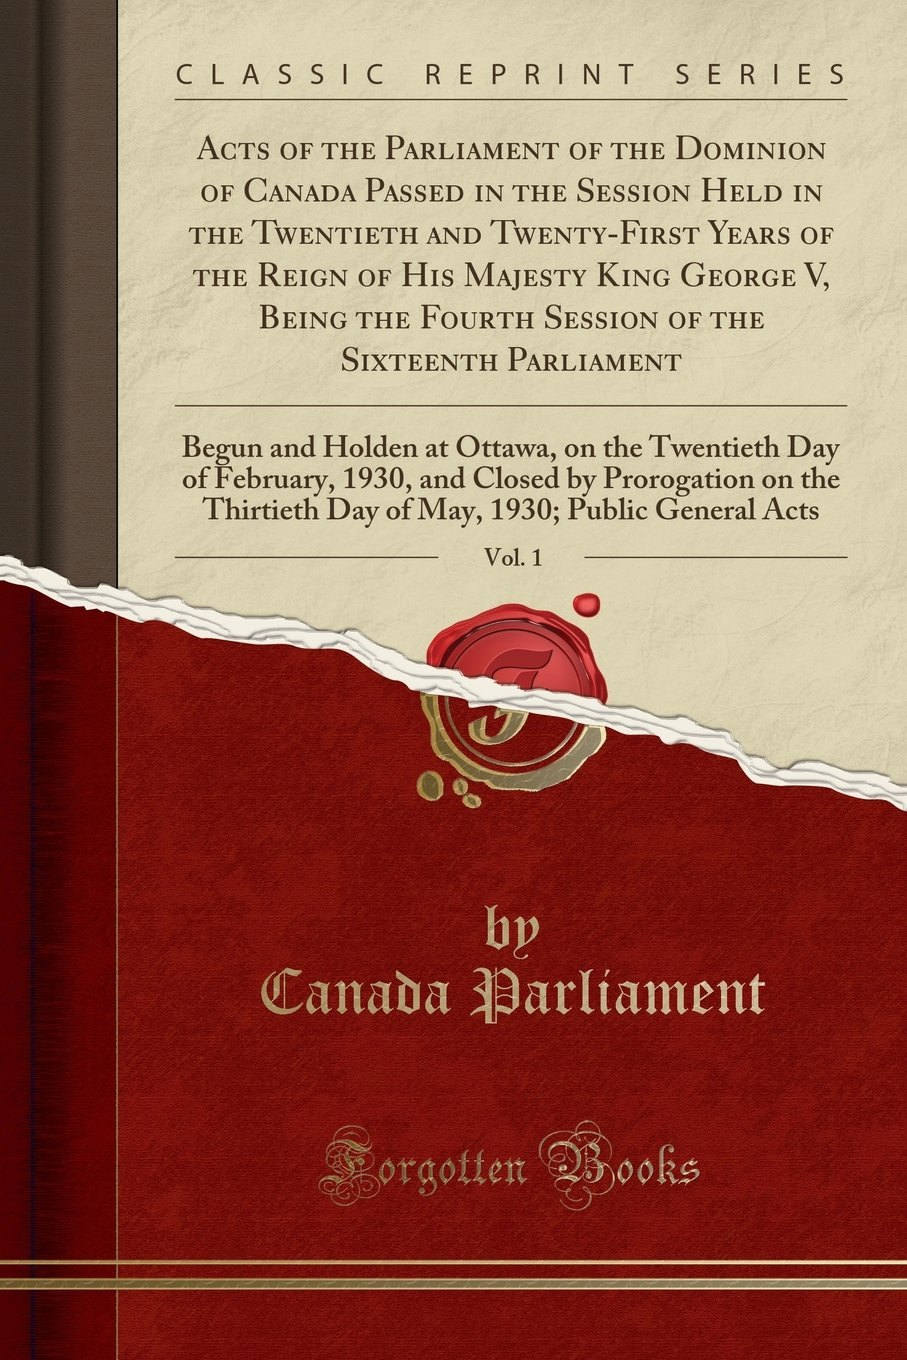 Download Acts of the Parliament of the Dominion of Canada Passed in the Session Held in the Twentieth and Twenty-First Years of the Reign of His Majesty King ... Vol. 1: Begun and Holden at Ottawa, on the PDF